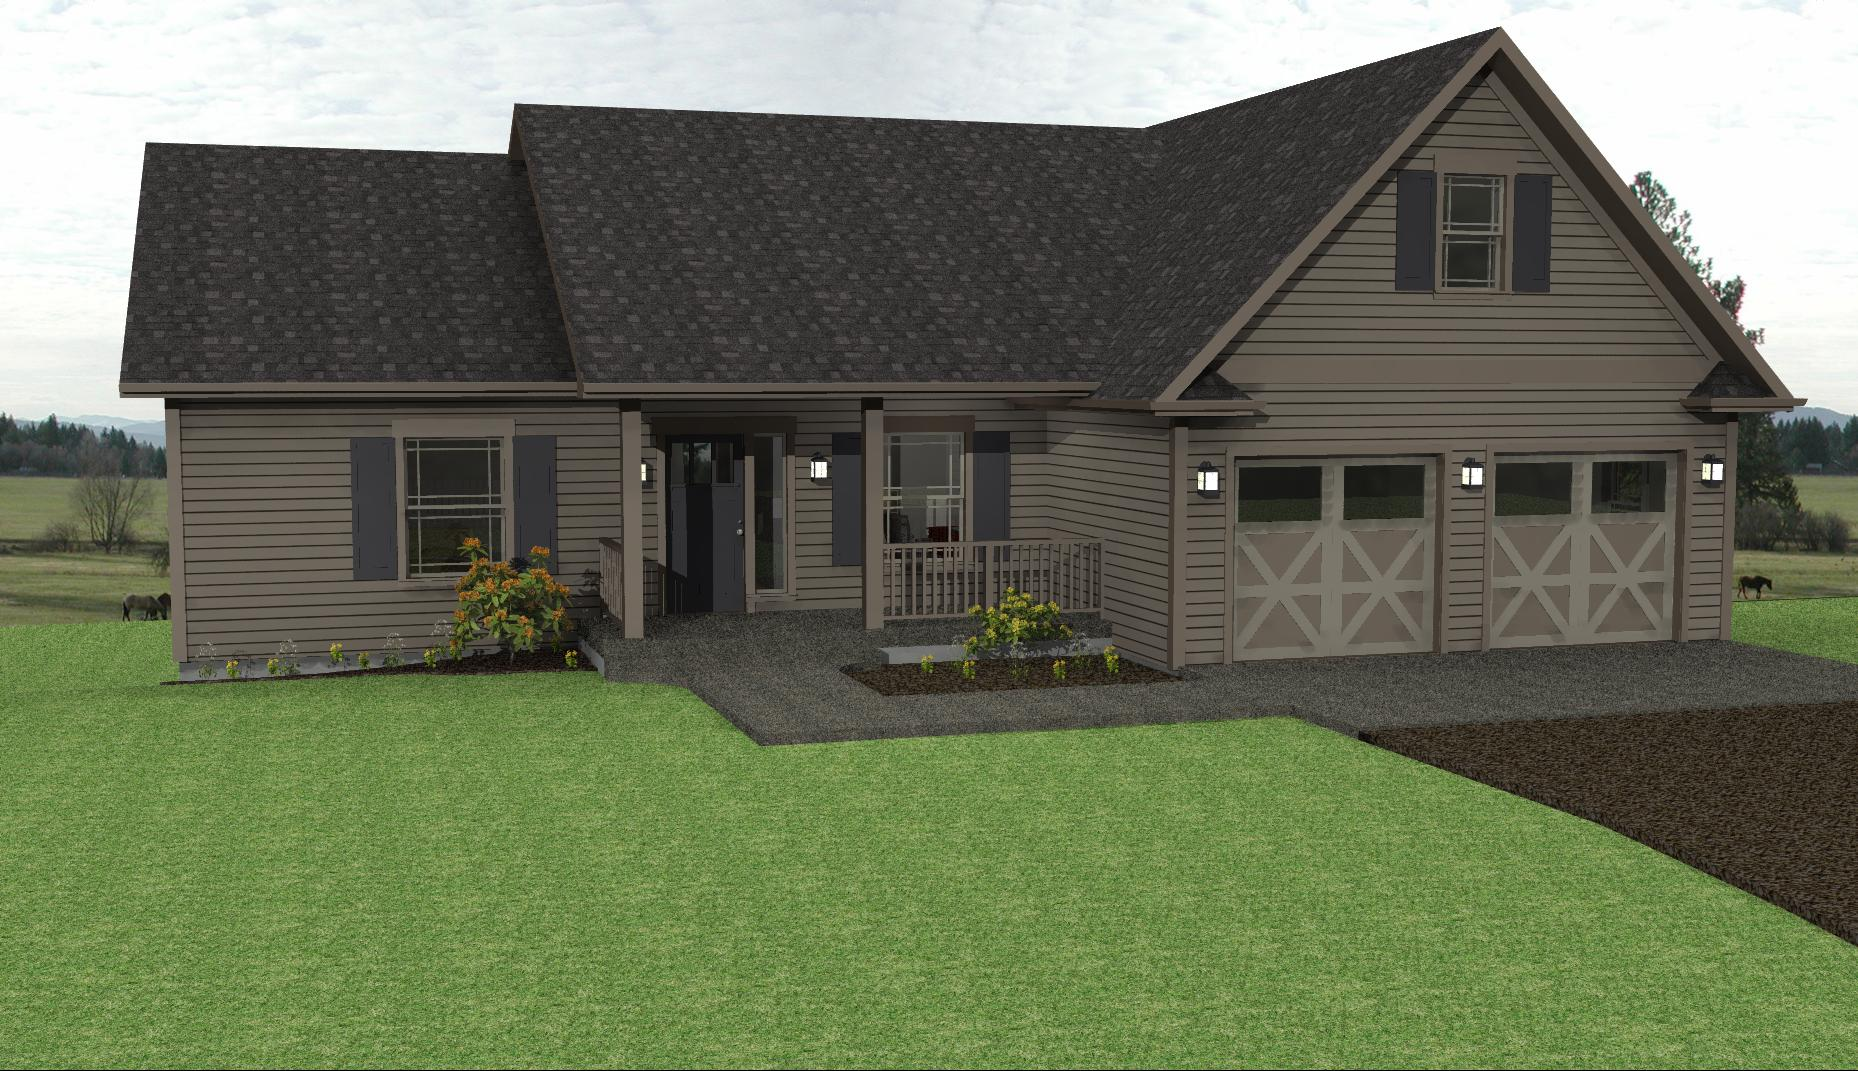 Country ranch home plans find house plans Ranch home plans